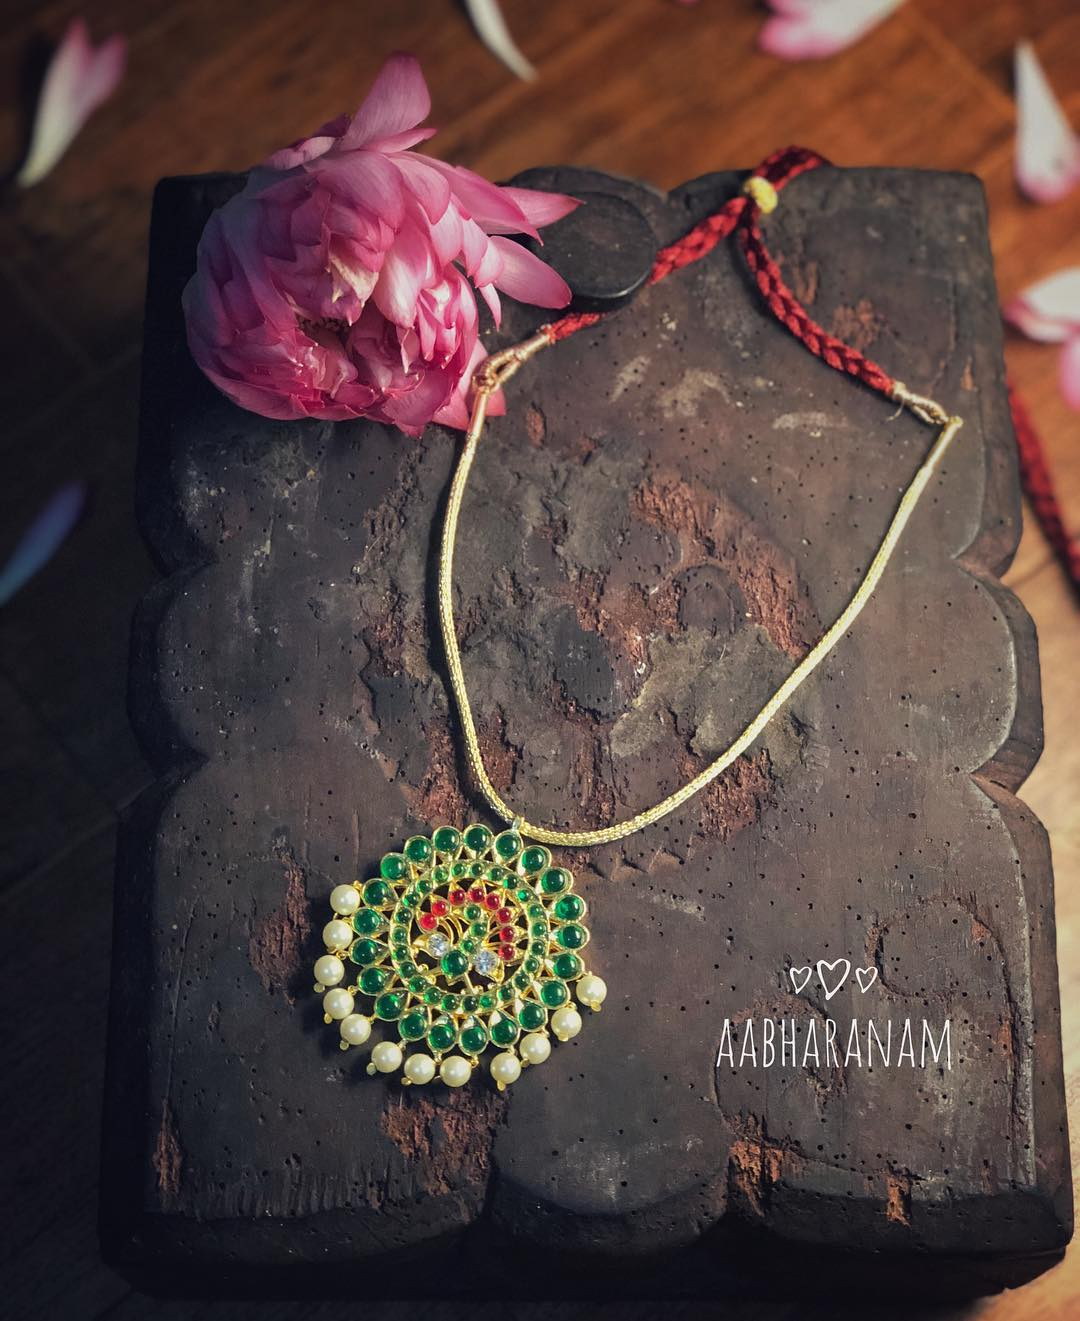 Simple And Cute Necklace From Aabharanam